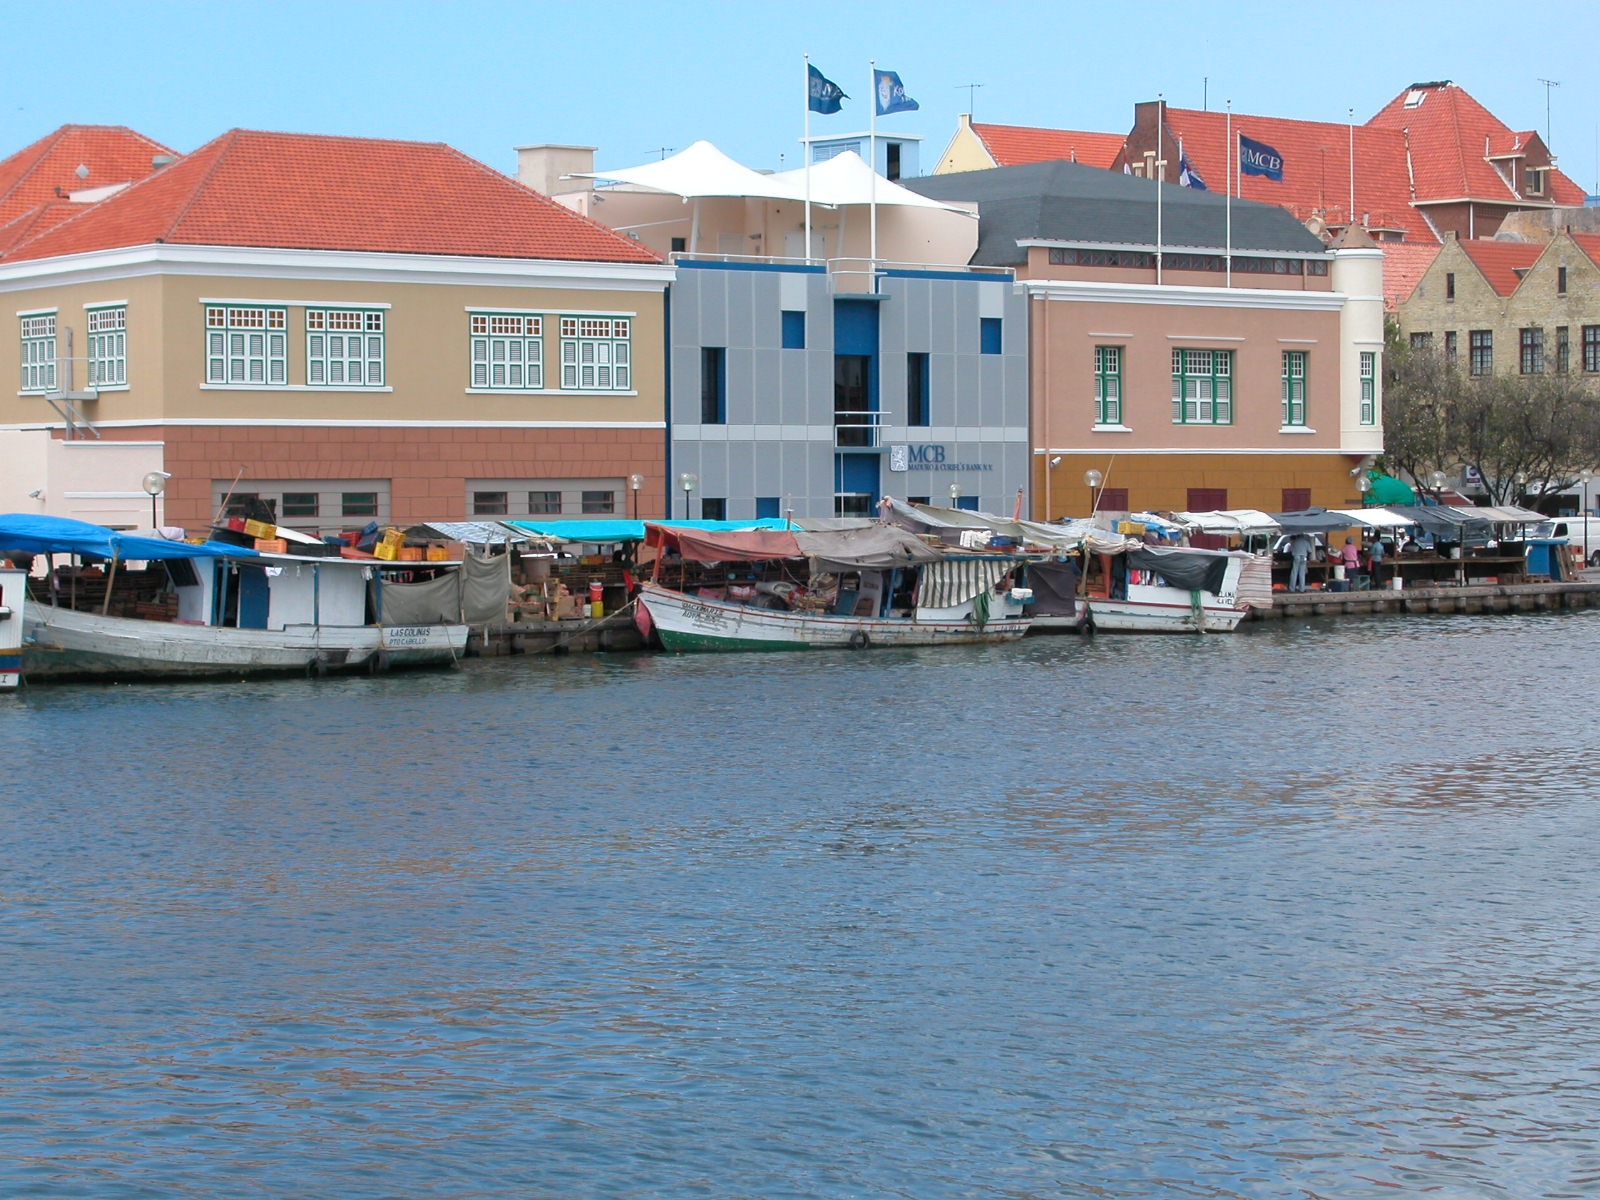 architecture exteriors willemstad curacao jacco water boats quay market river city buildings